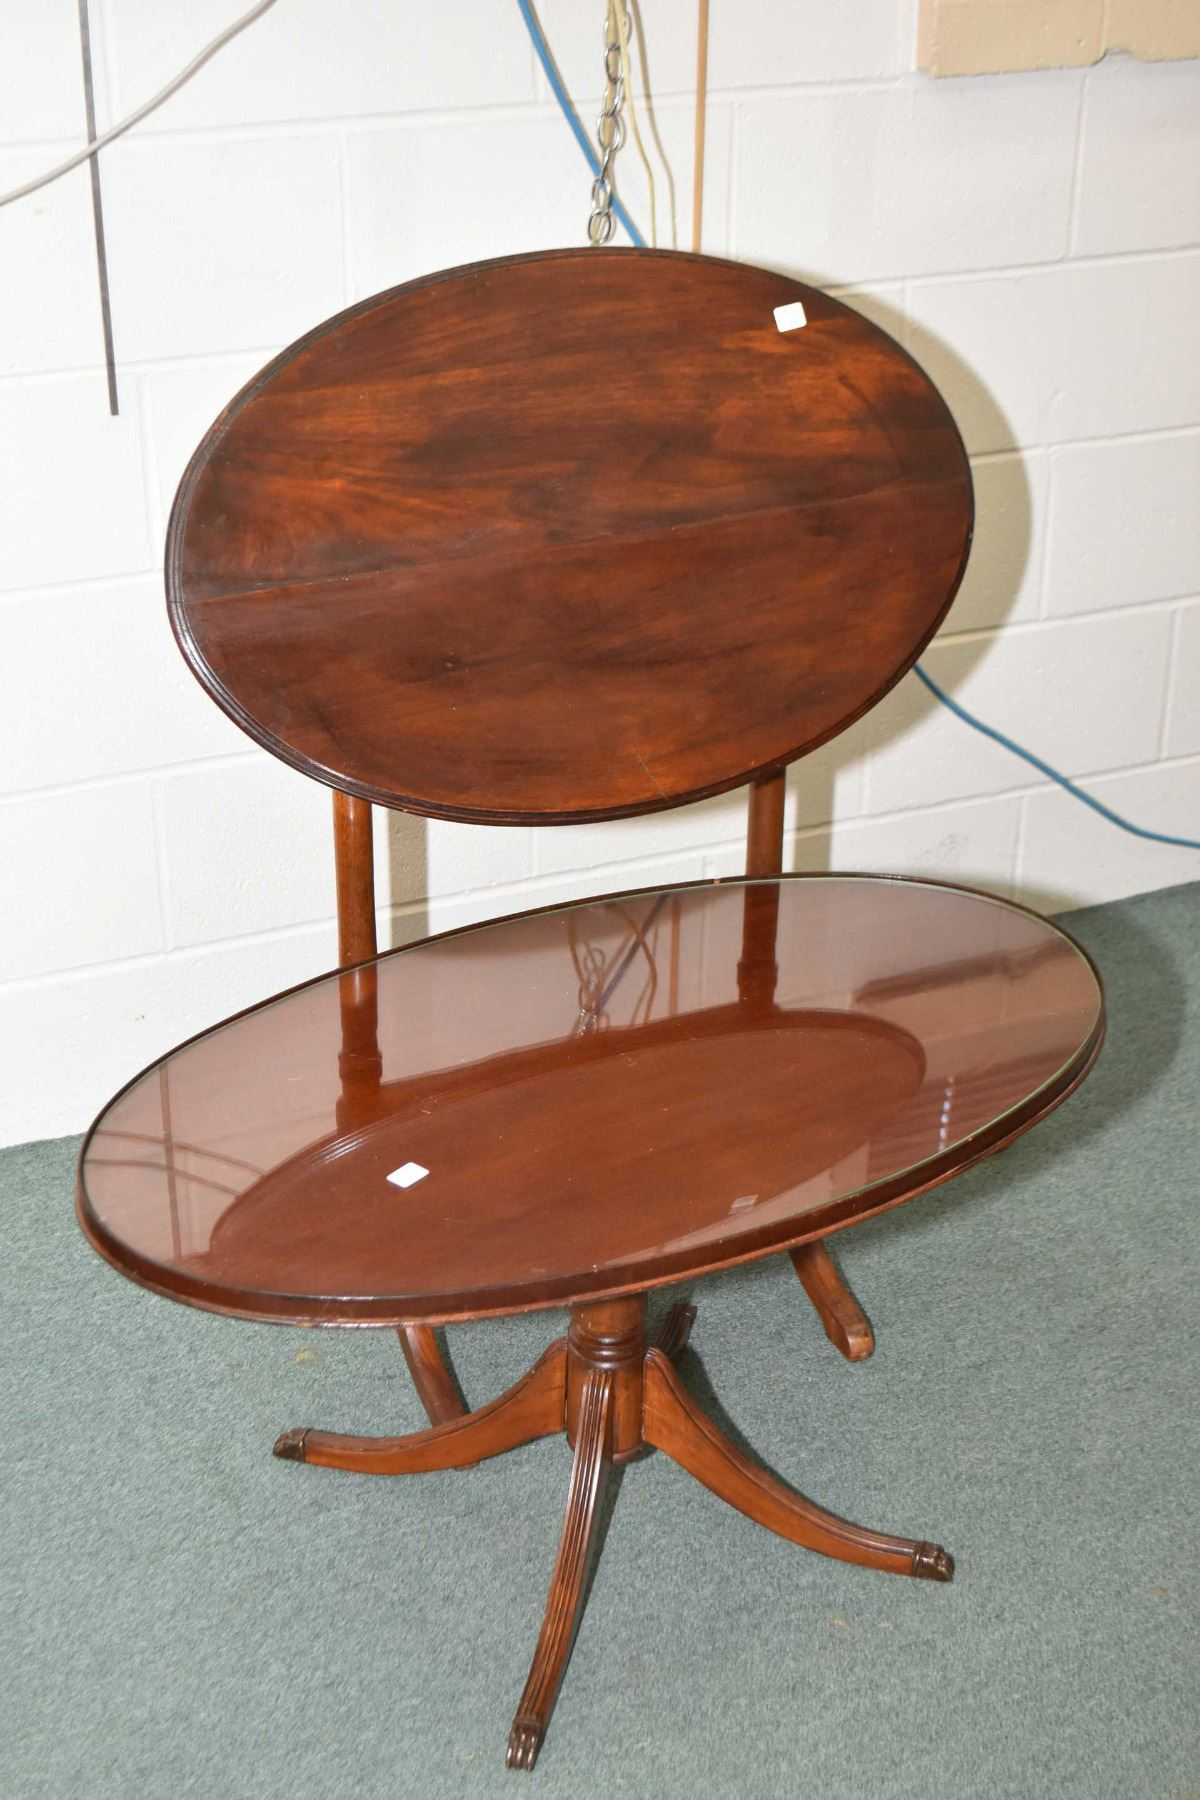 Image 1 Regency Style Center Pedestal Mahogany Coffee Table With Br Ced Claw Feet And